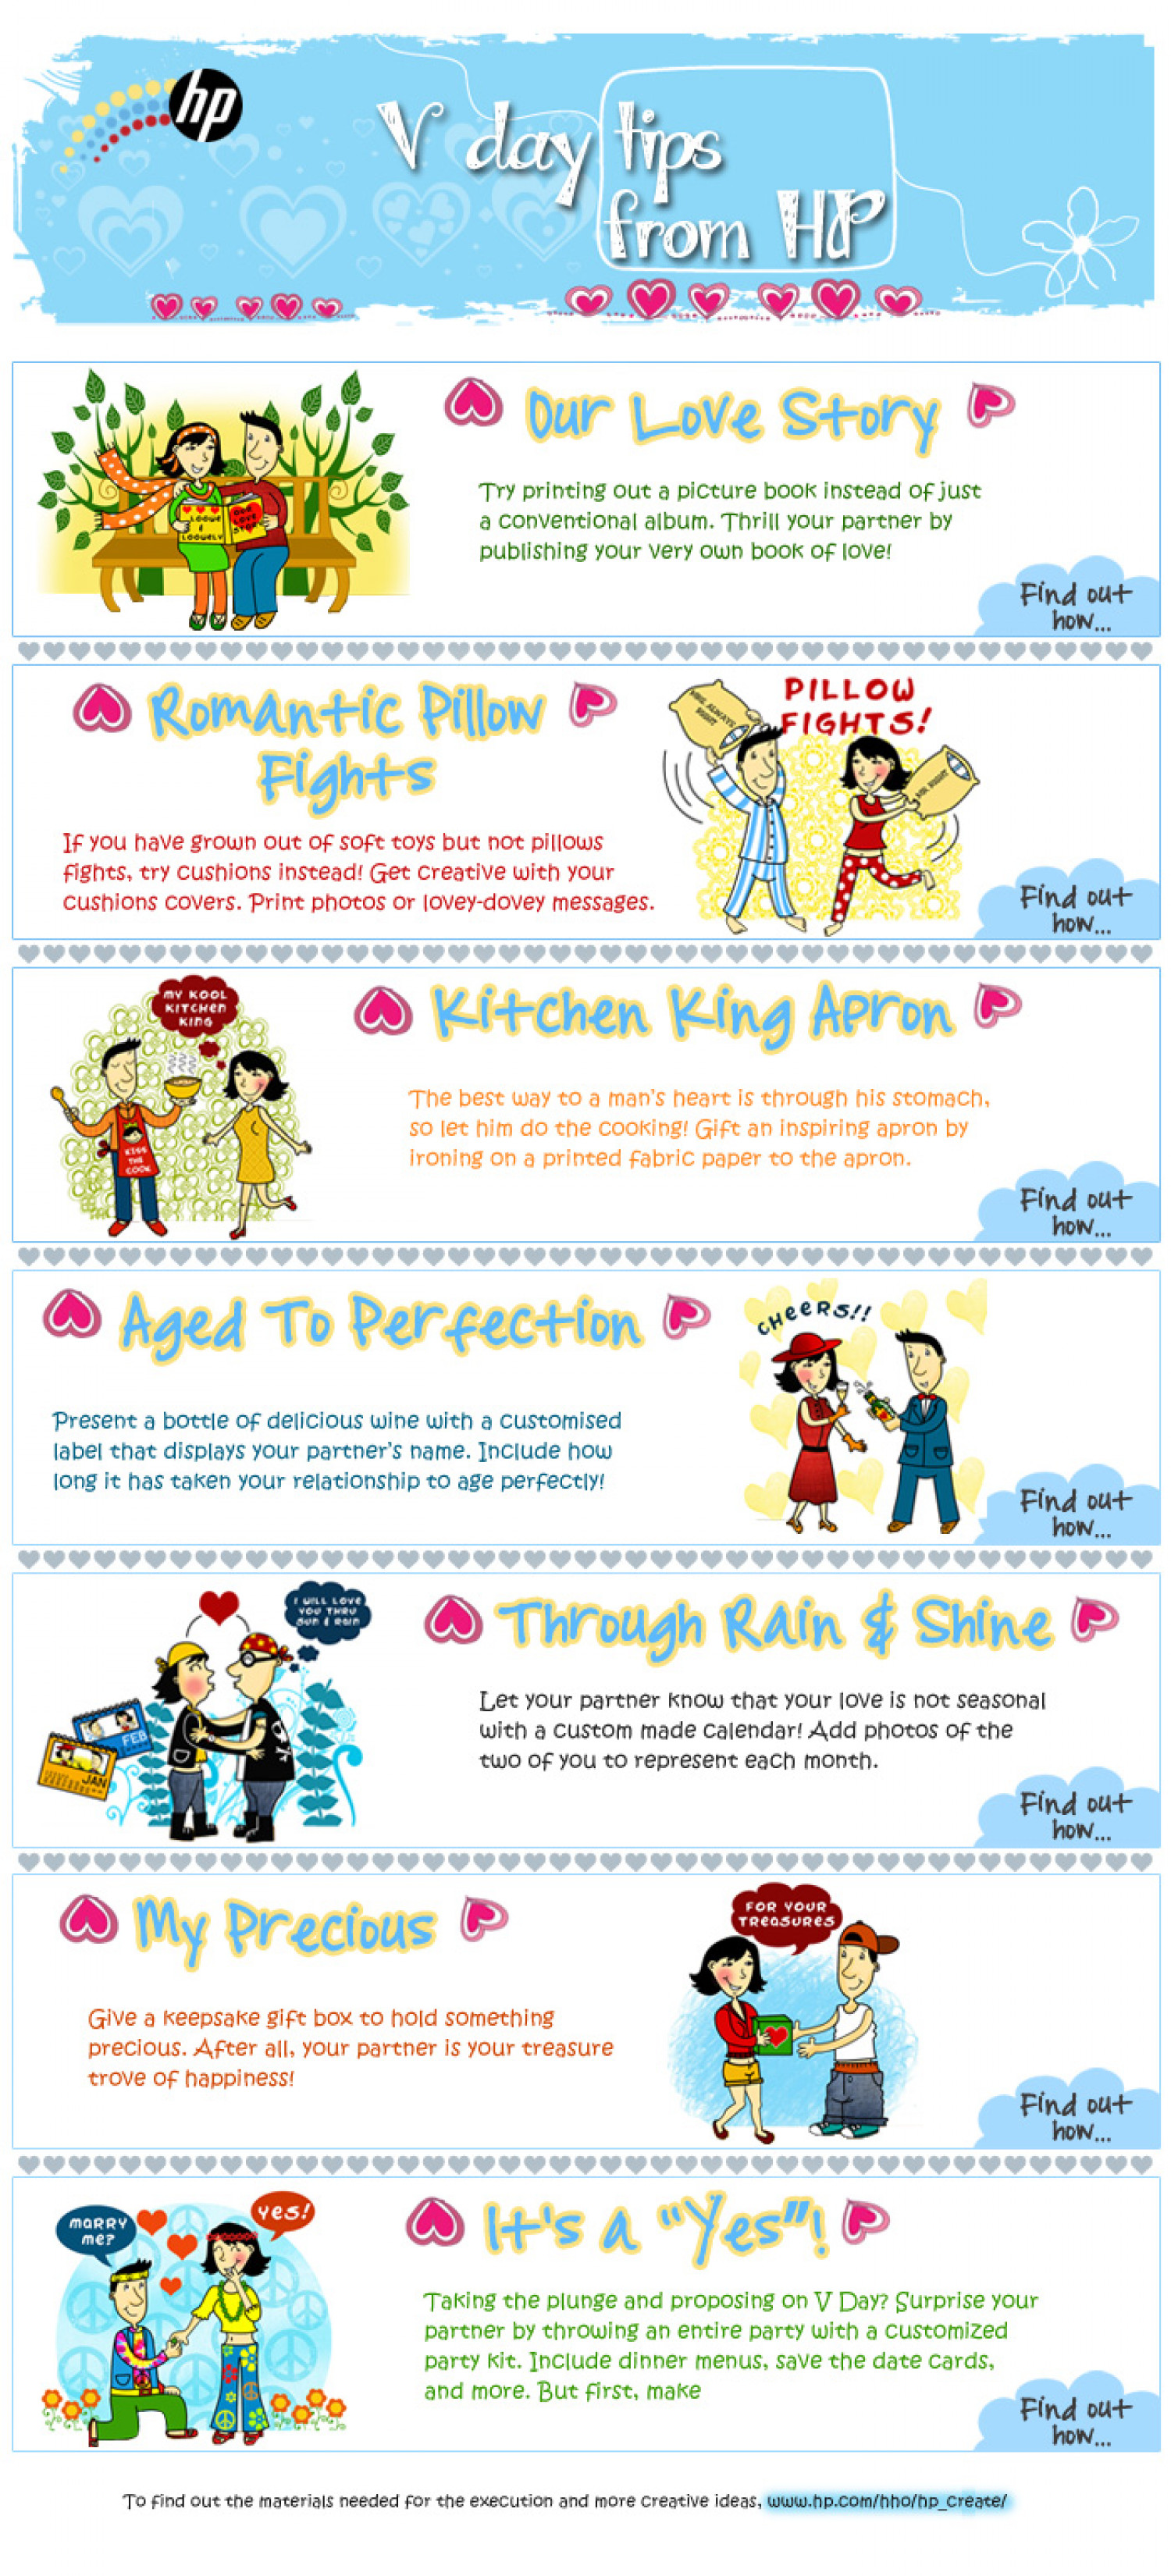 Valentine Day Tips from HP Infographic